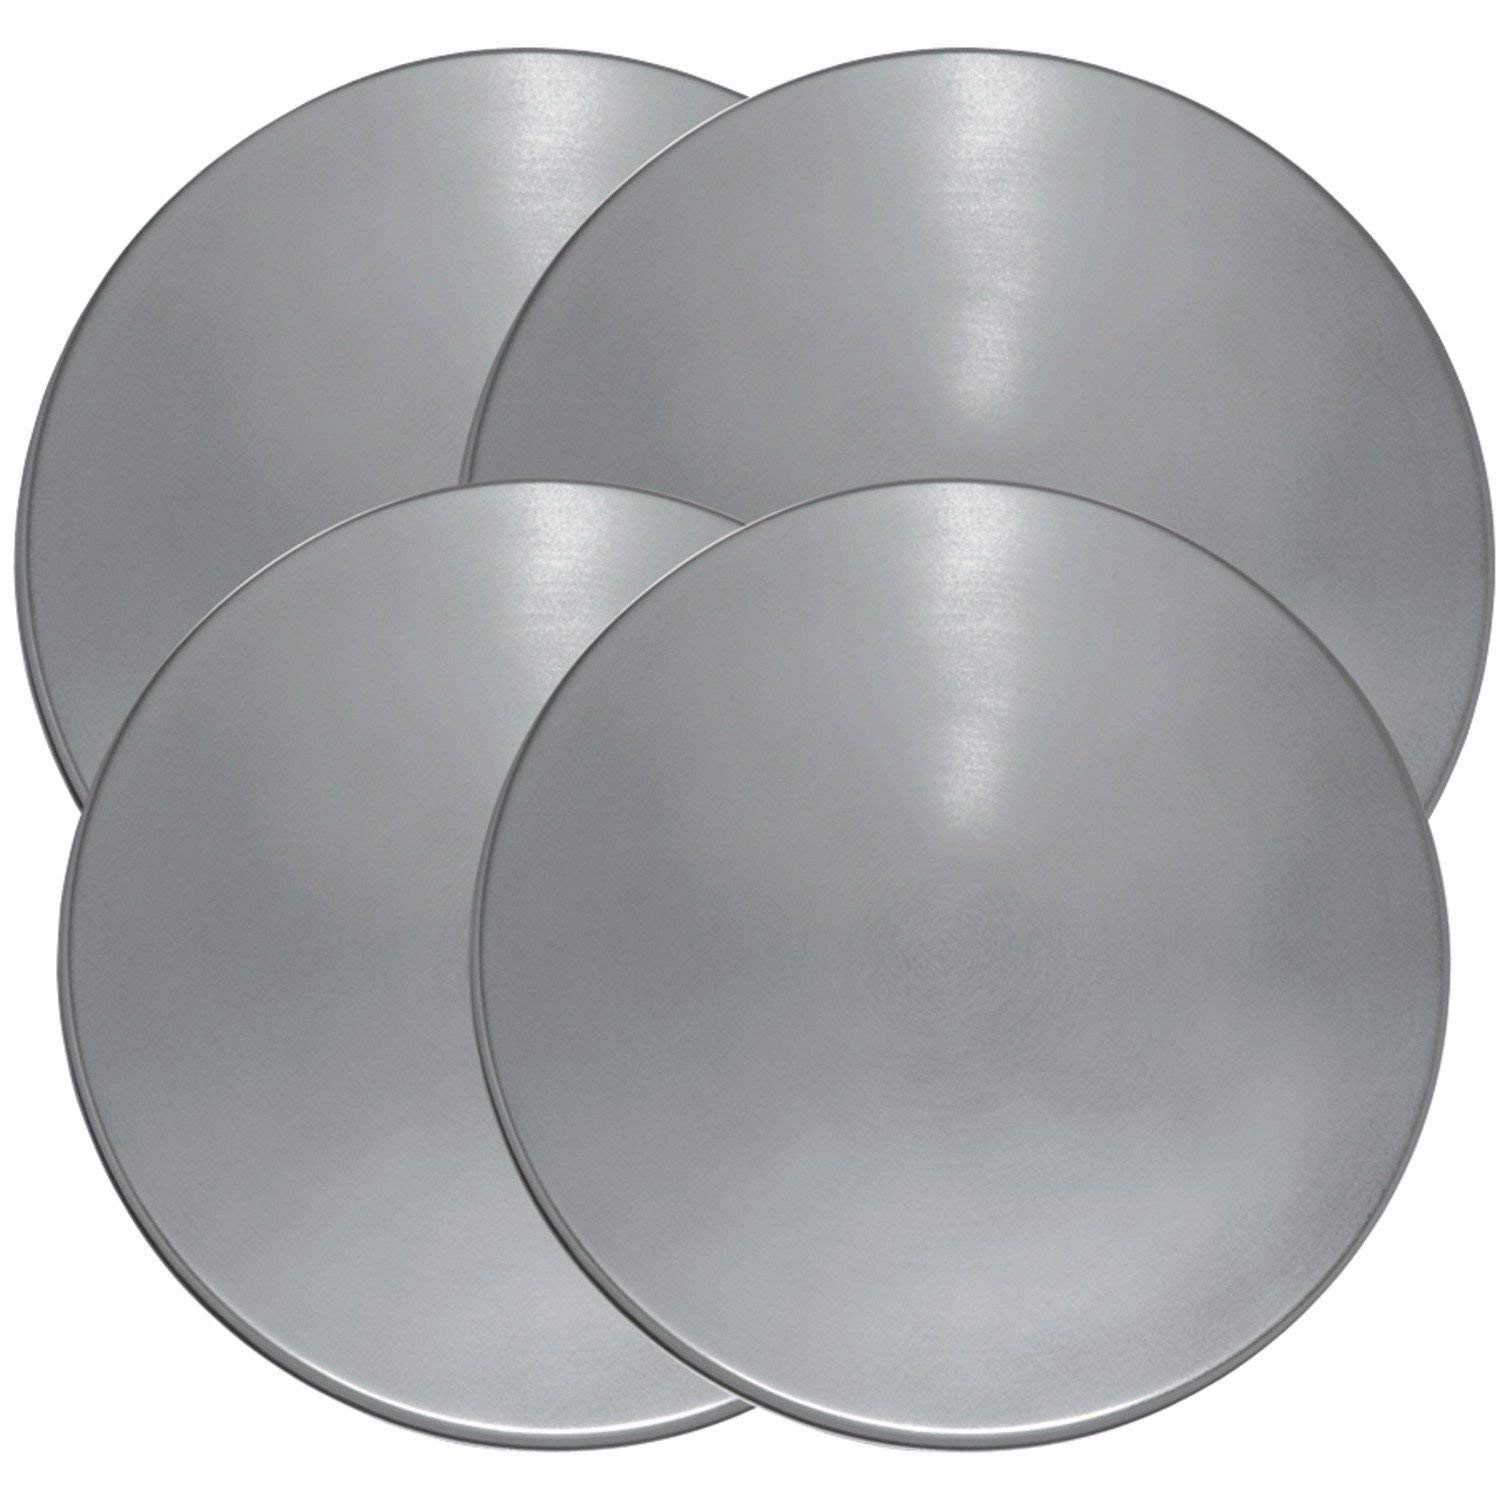 KHY (4) Stainless Steel Round Electric Kitchen Stove Range Top Burner Covers Set FOR Range Kleen 550-4